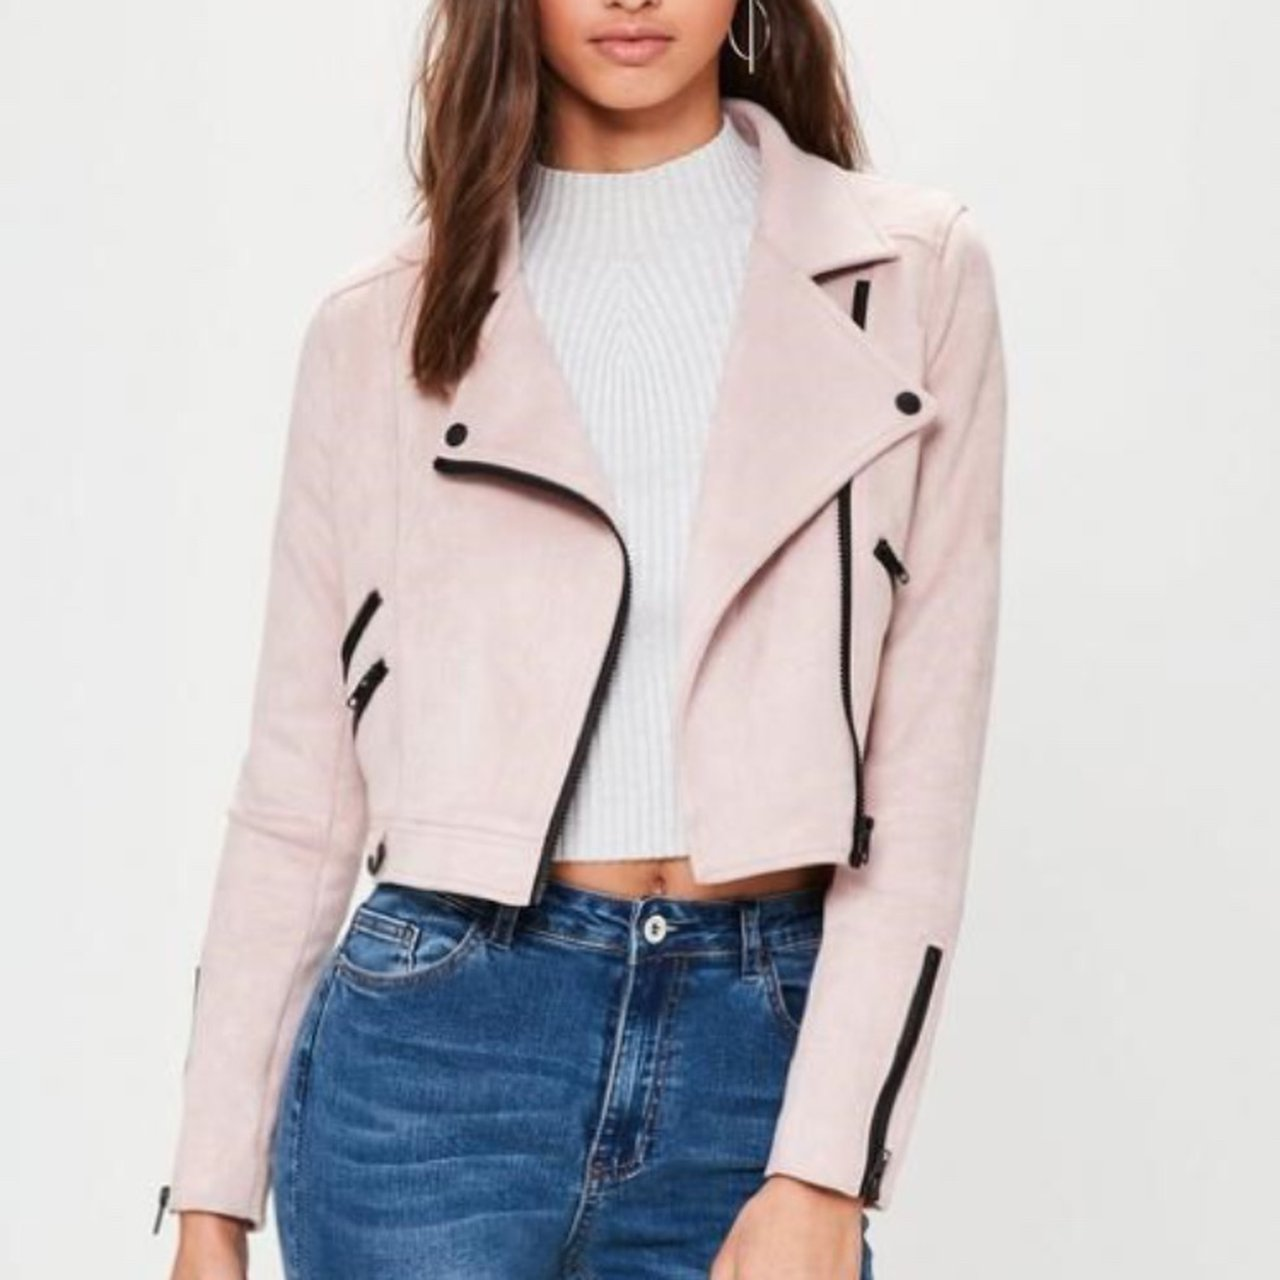 b154bf6a02a7 DISCOUNTED Missguided biker jacket. Currently out of stock 6 - Depop